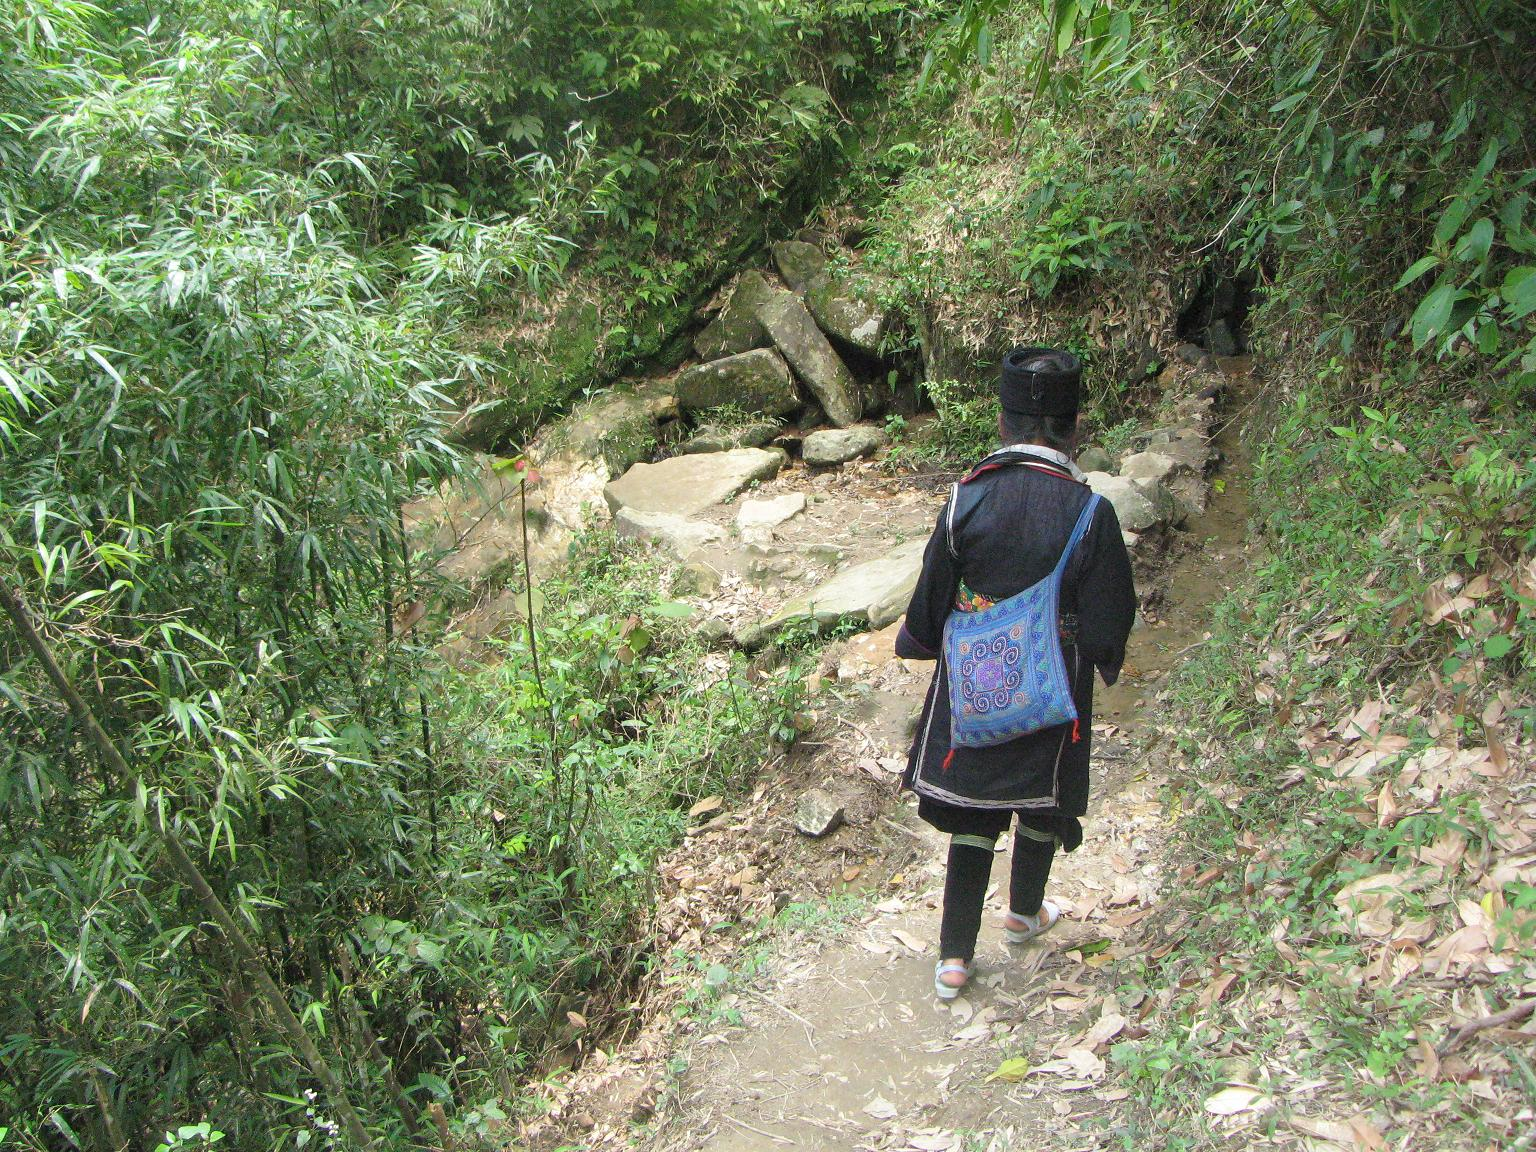 Trekking in Sapa Vietnam with a local guide